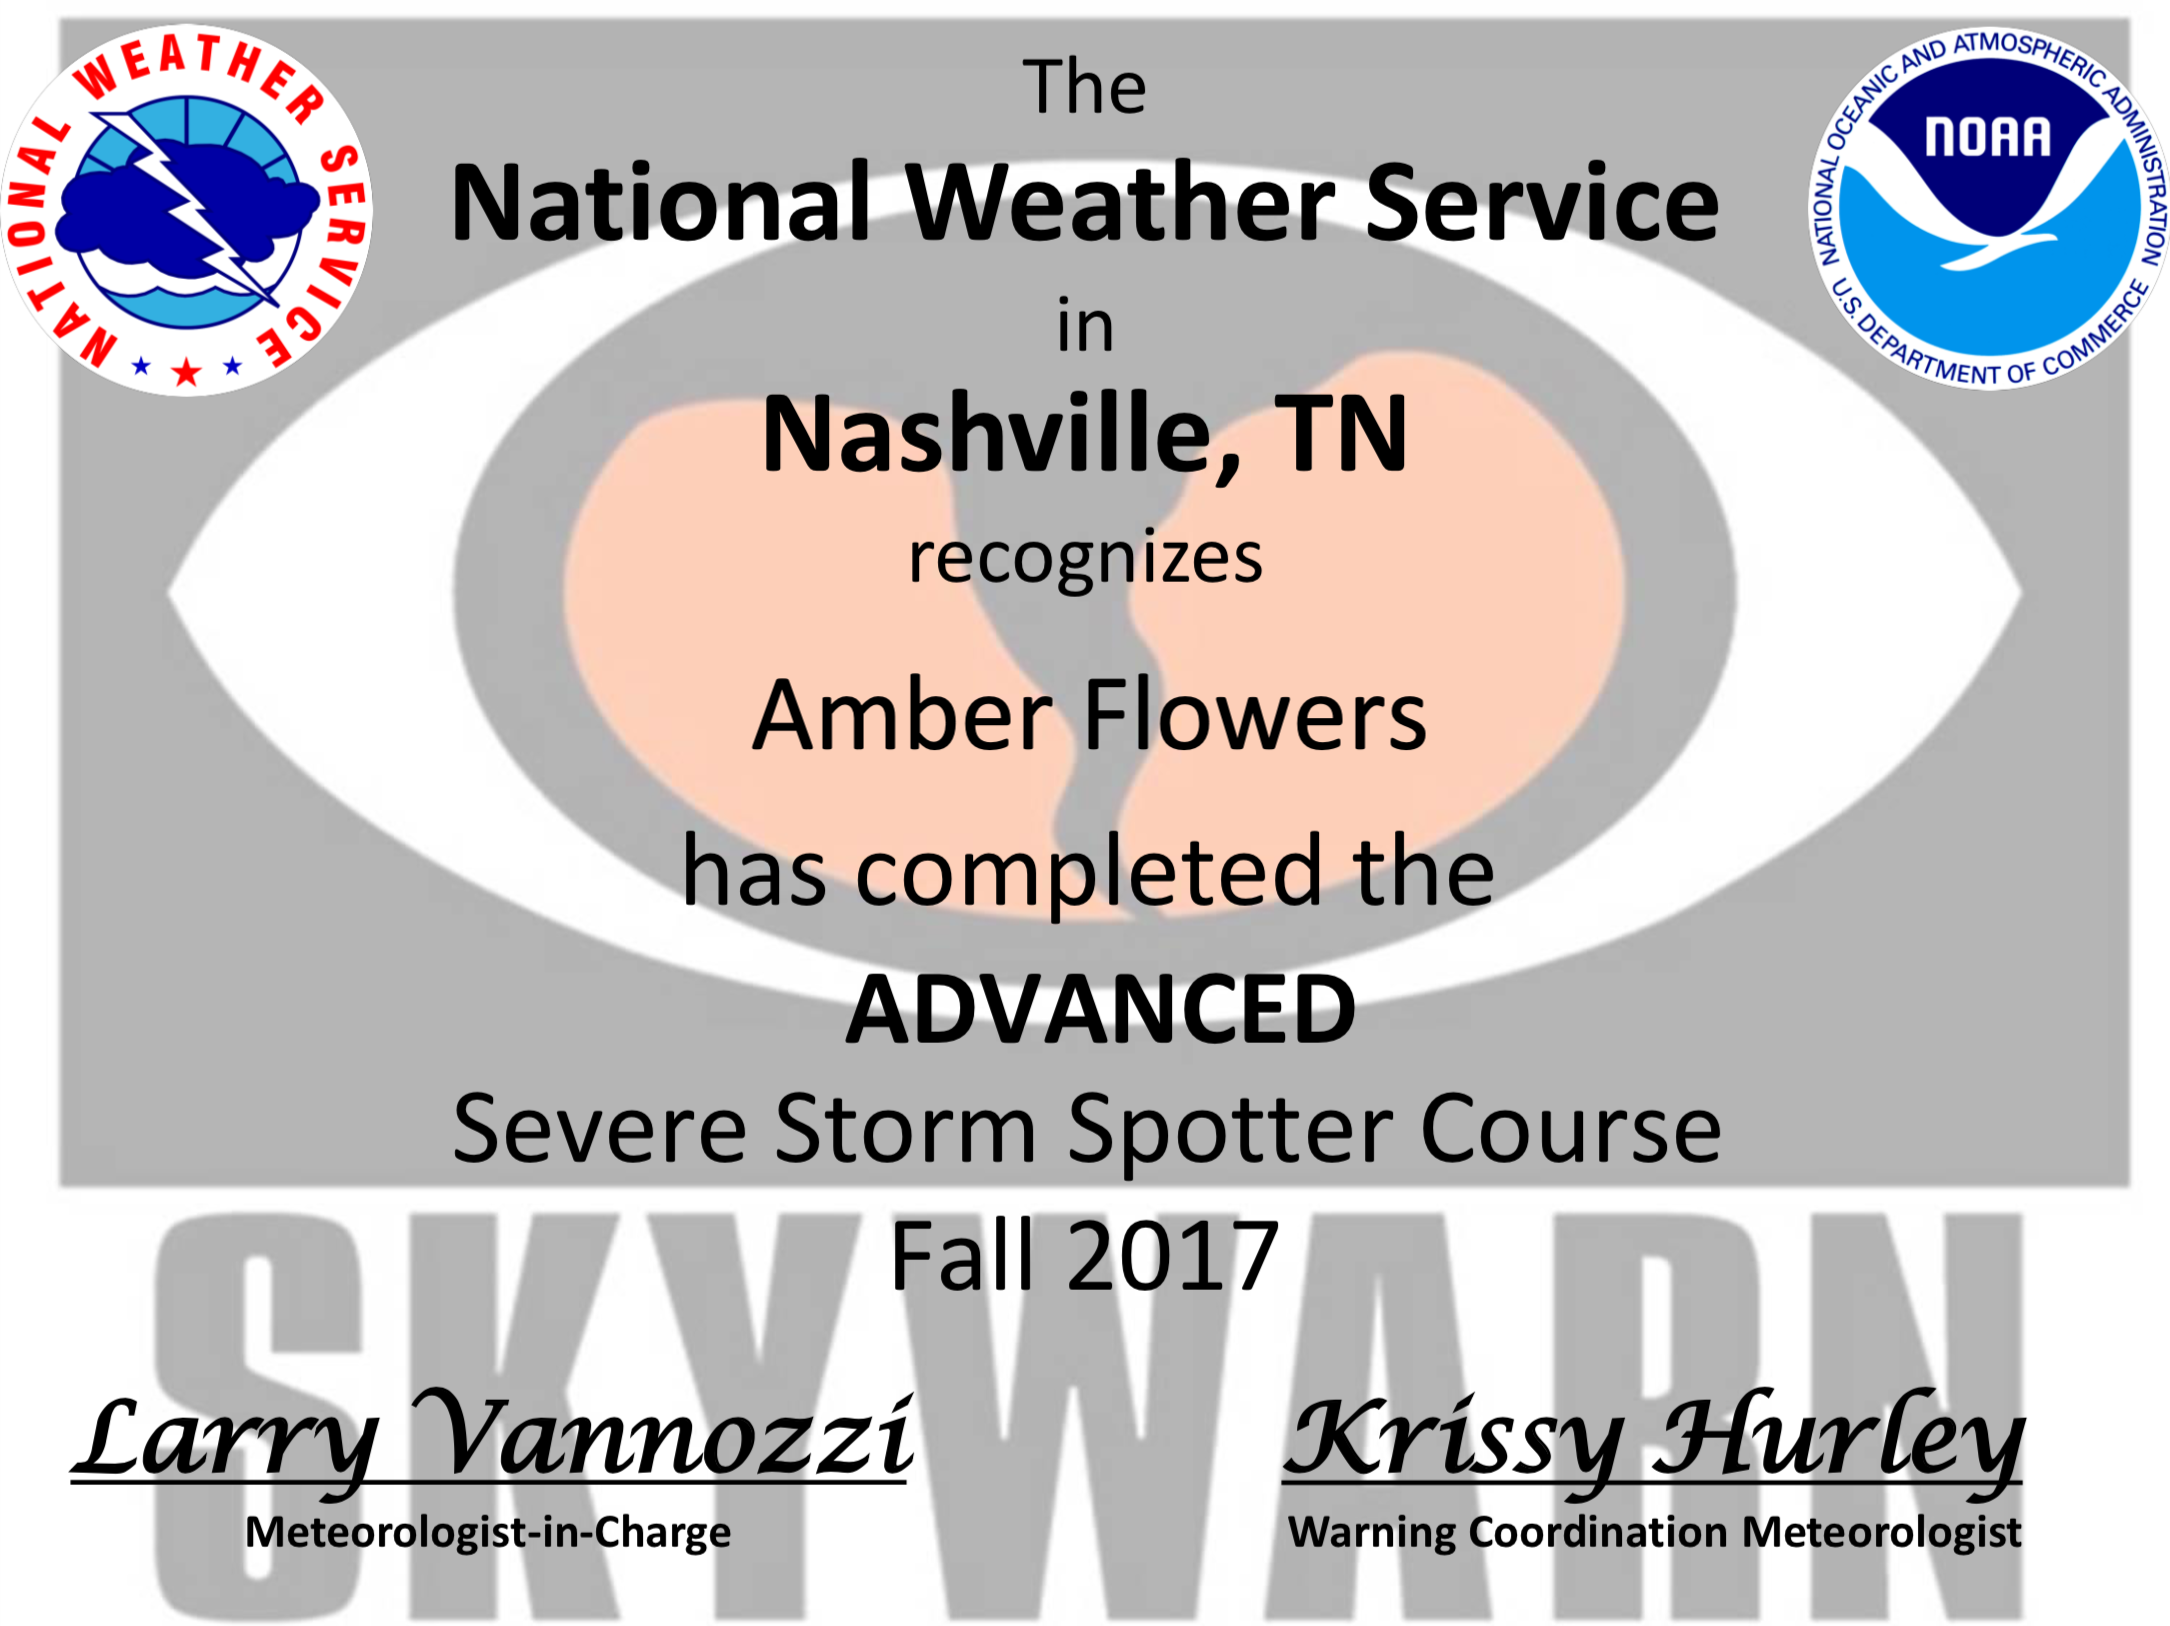 Advanced Severe Spotter Online Course  National Weather Service Fall 2017   Skywarn Spotter Training  National Weather Service 2011, 2013, 2018, 2019